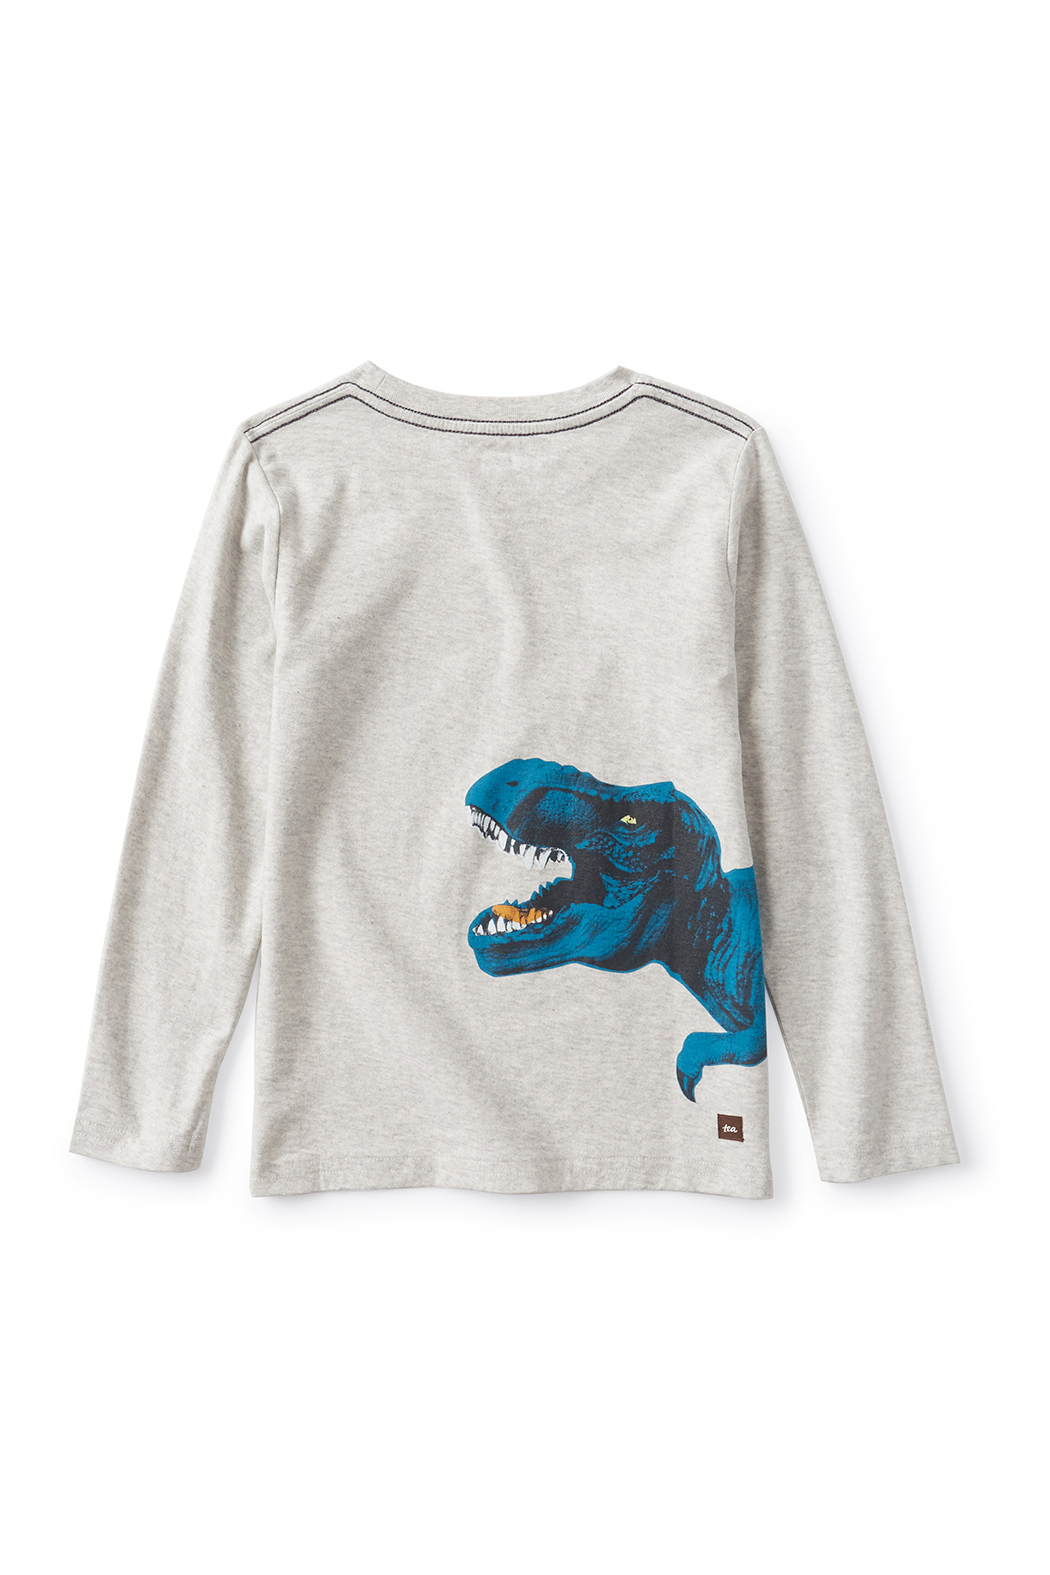 Tea Collection  Flexin' Rex Dino Graphic Te - Front Full Image